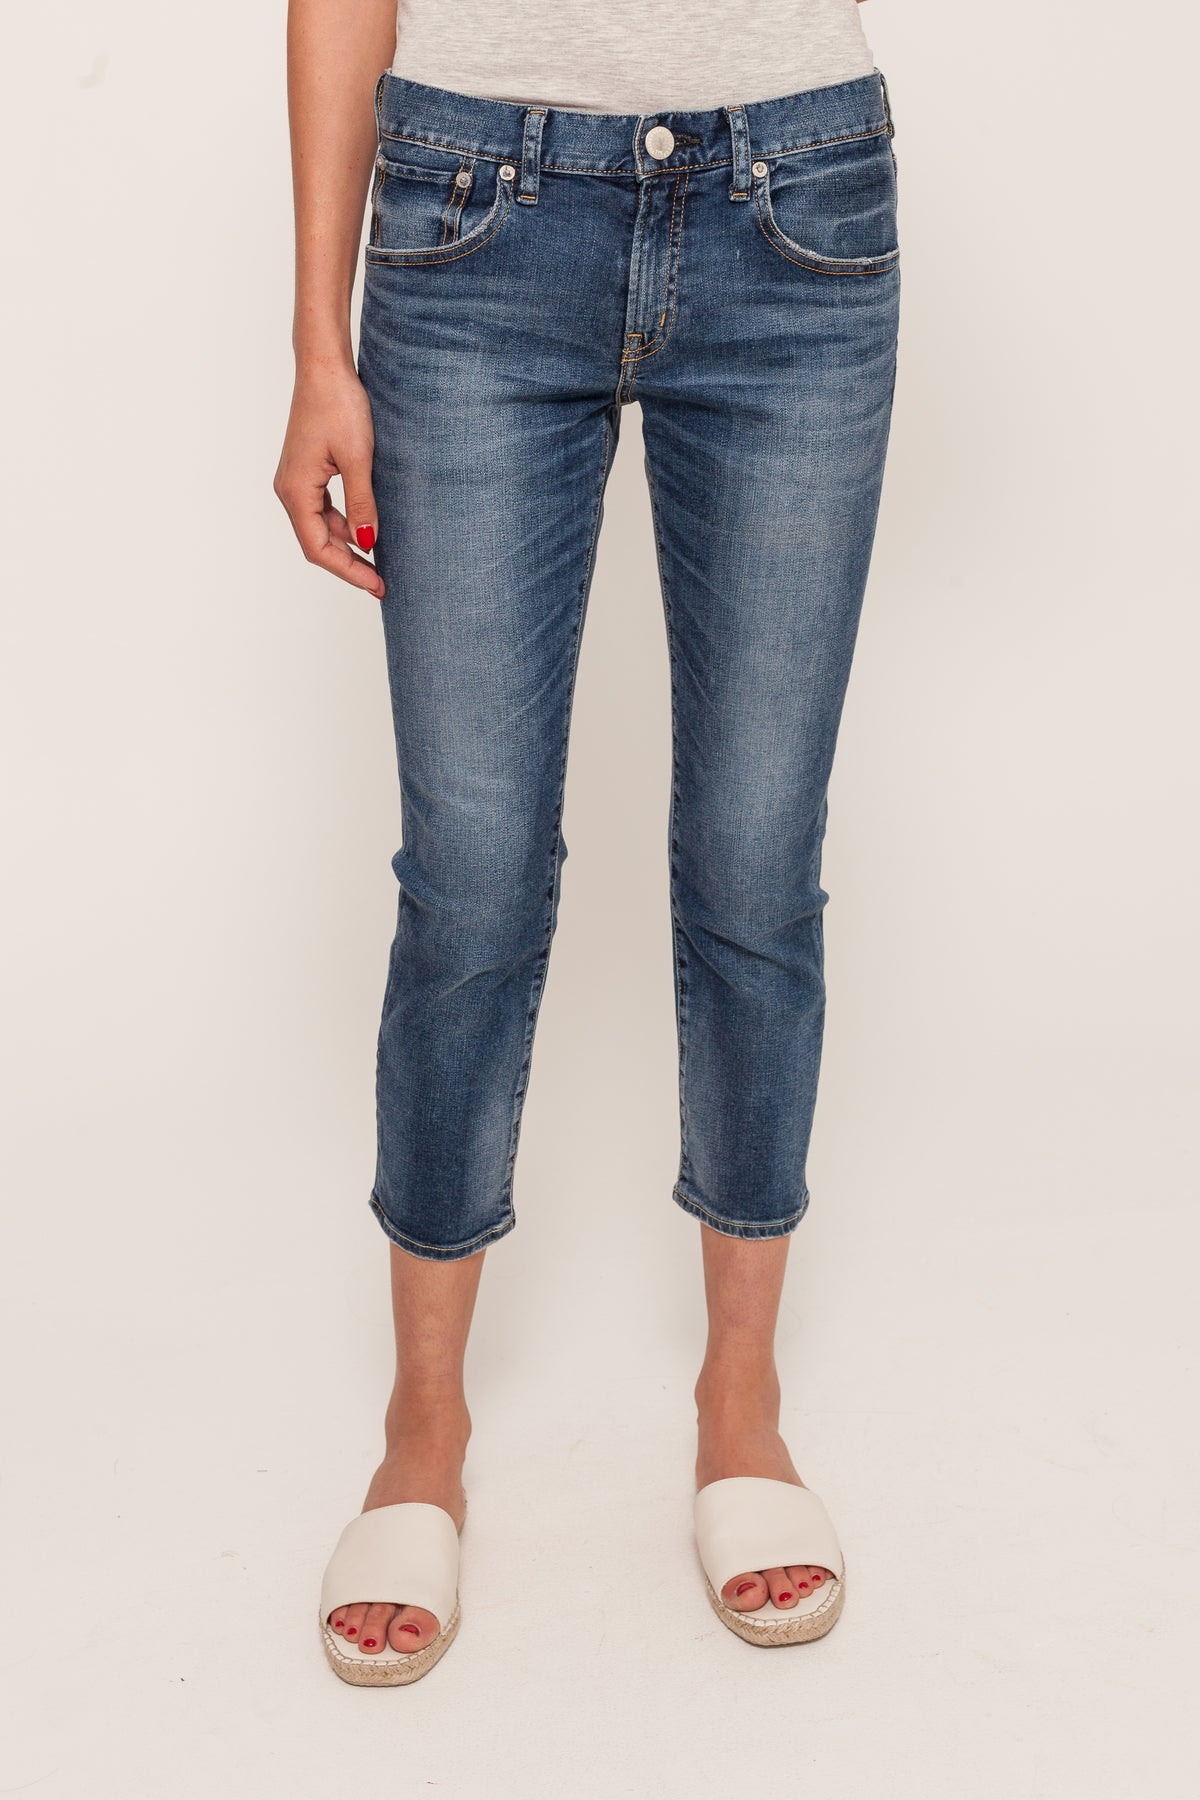 25th Anniversary Cropped Jeans